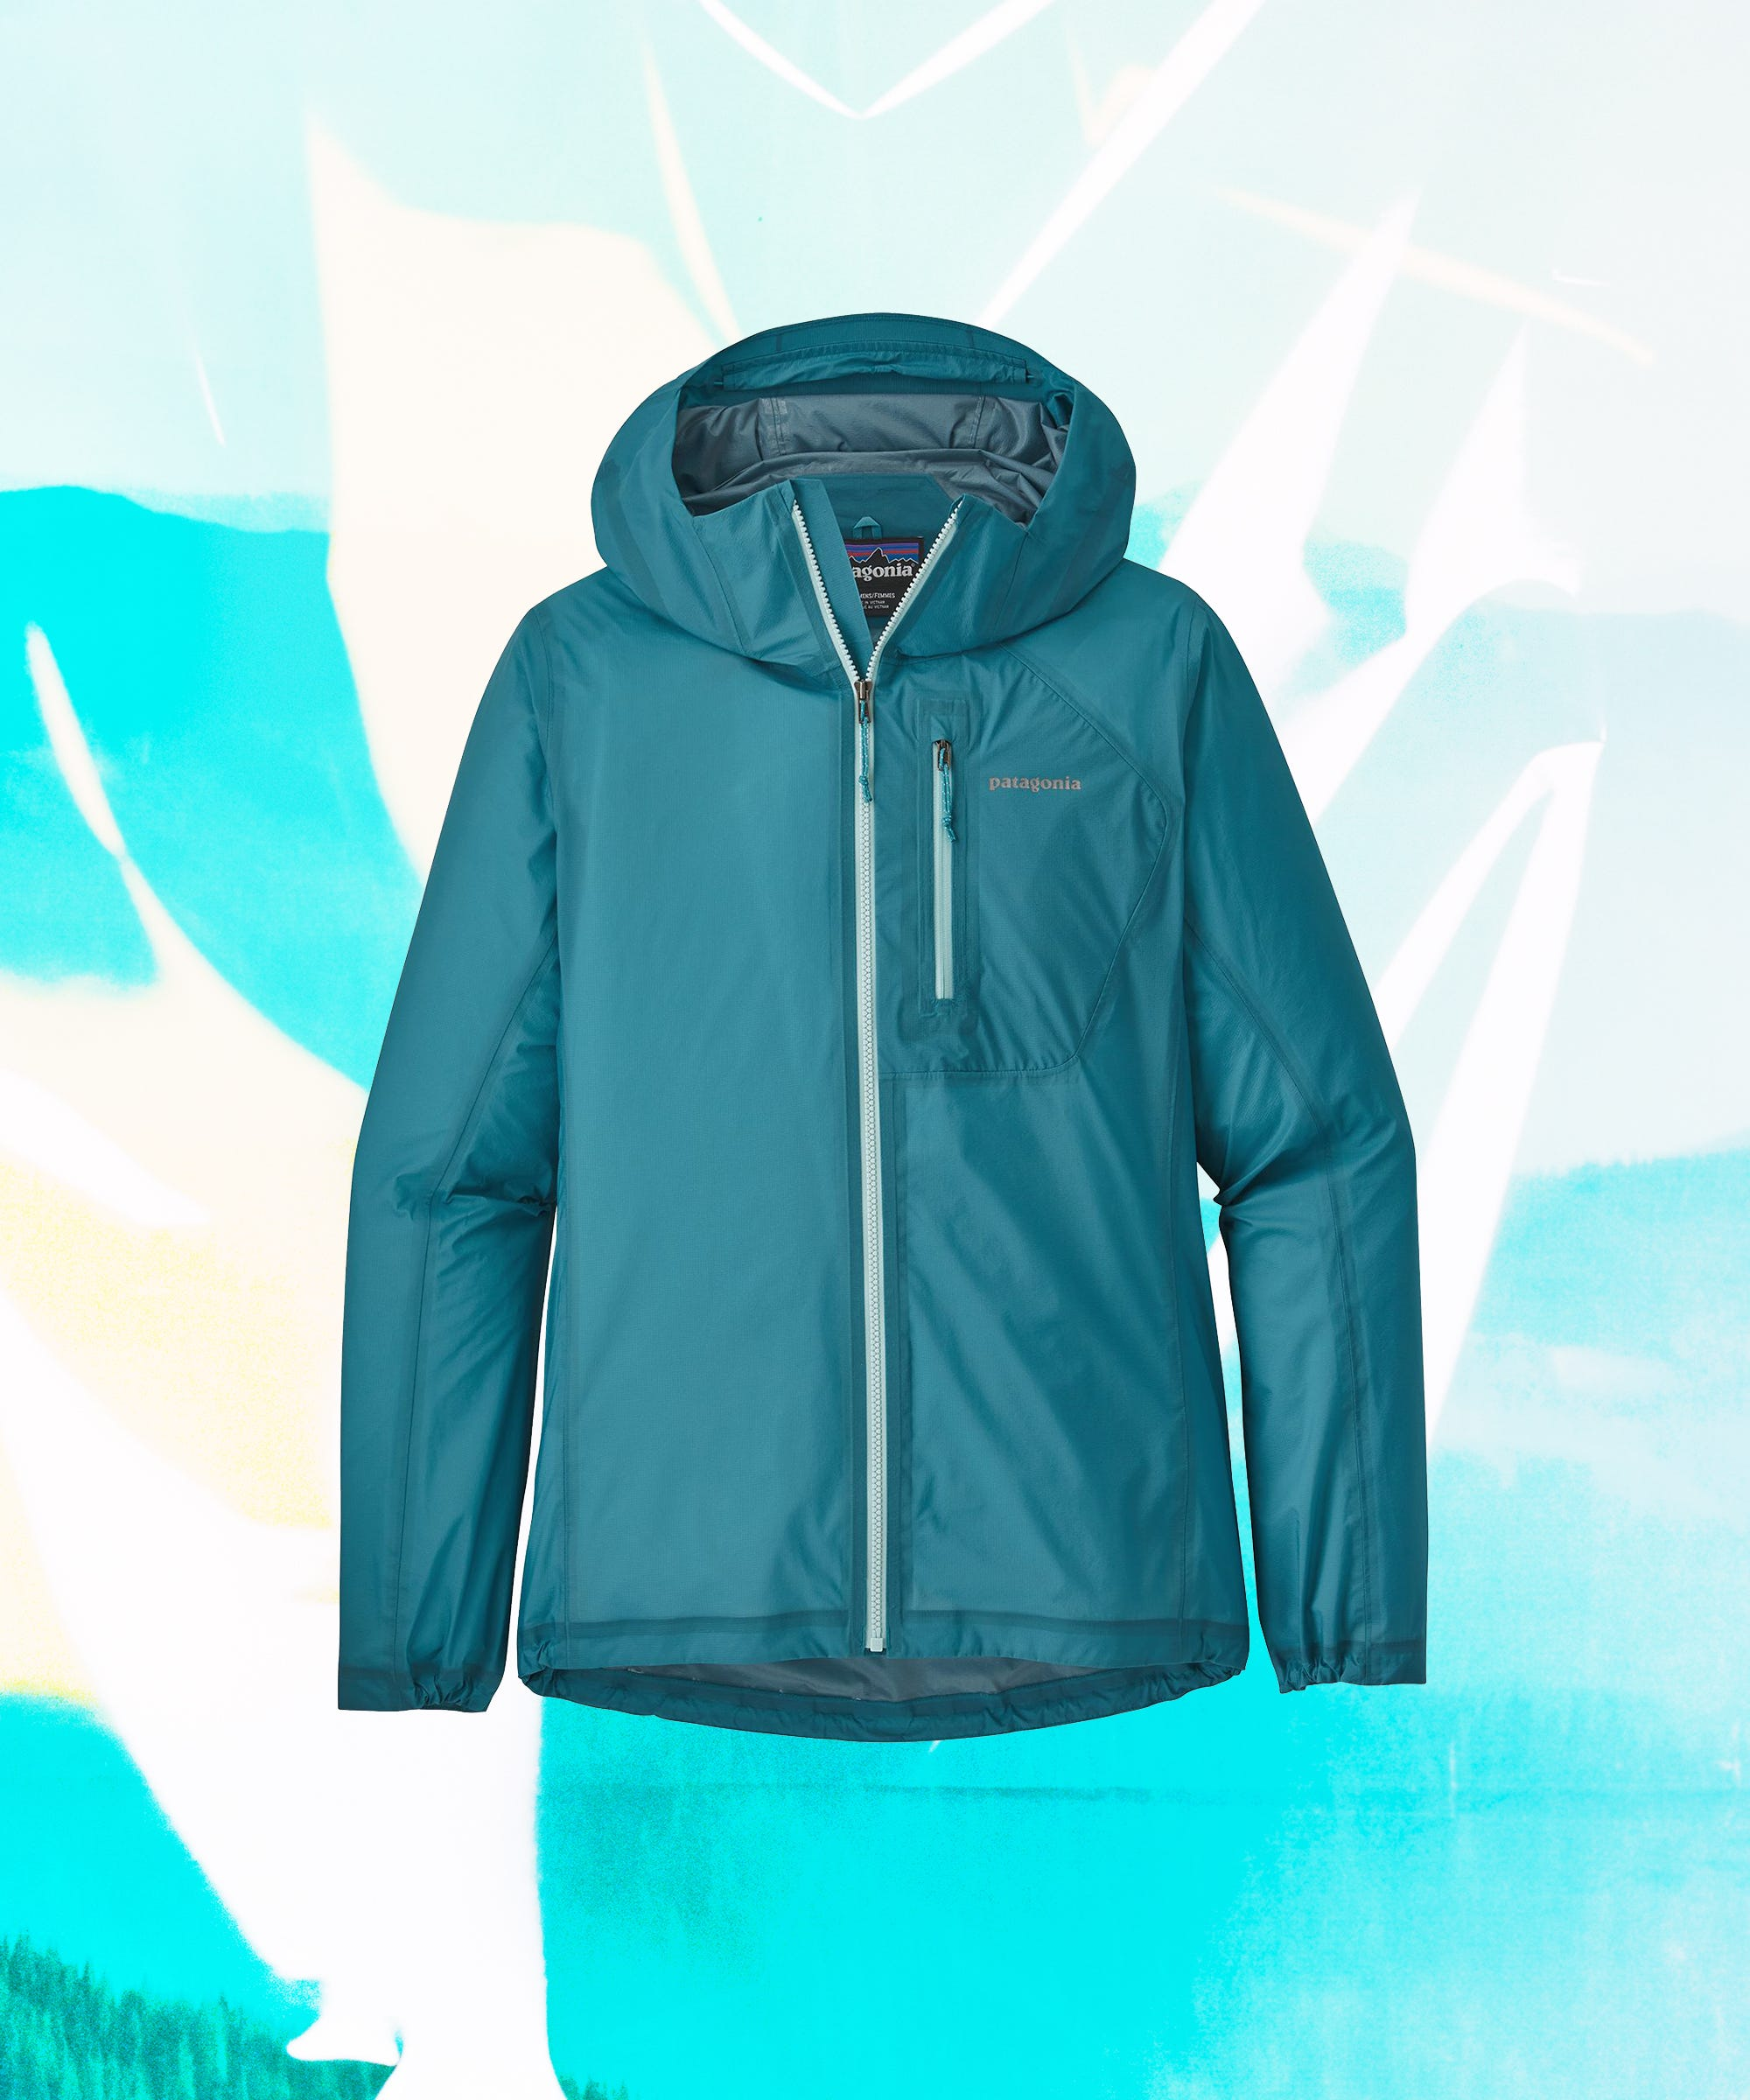 7 Running Jackets That Can Survive Spring Showers